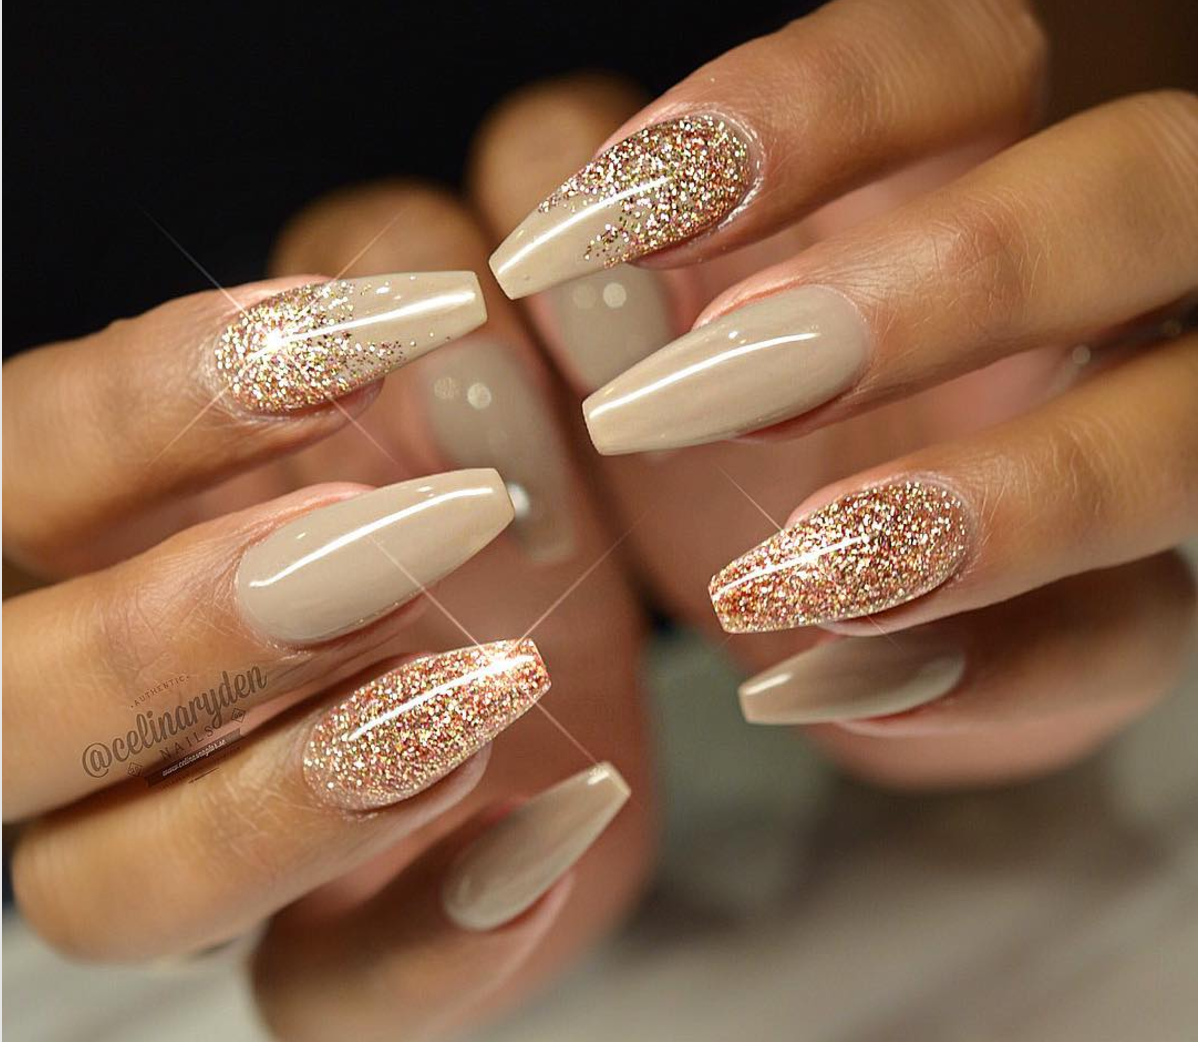 Autumn Glitter Gel Manicure | Nails | Pinterest | Glitter gel, Gel ...